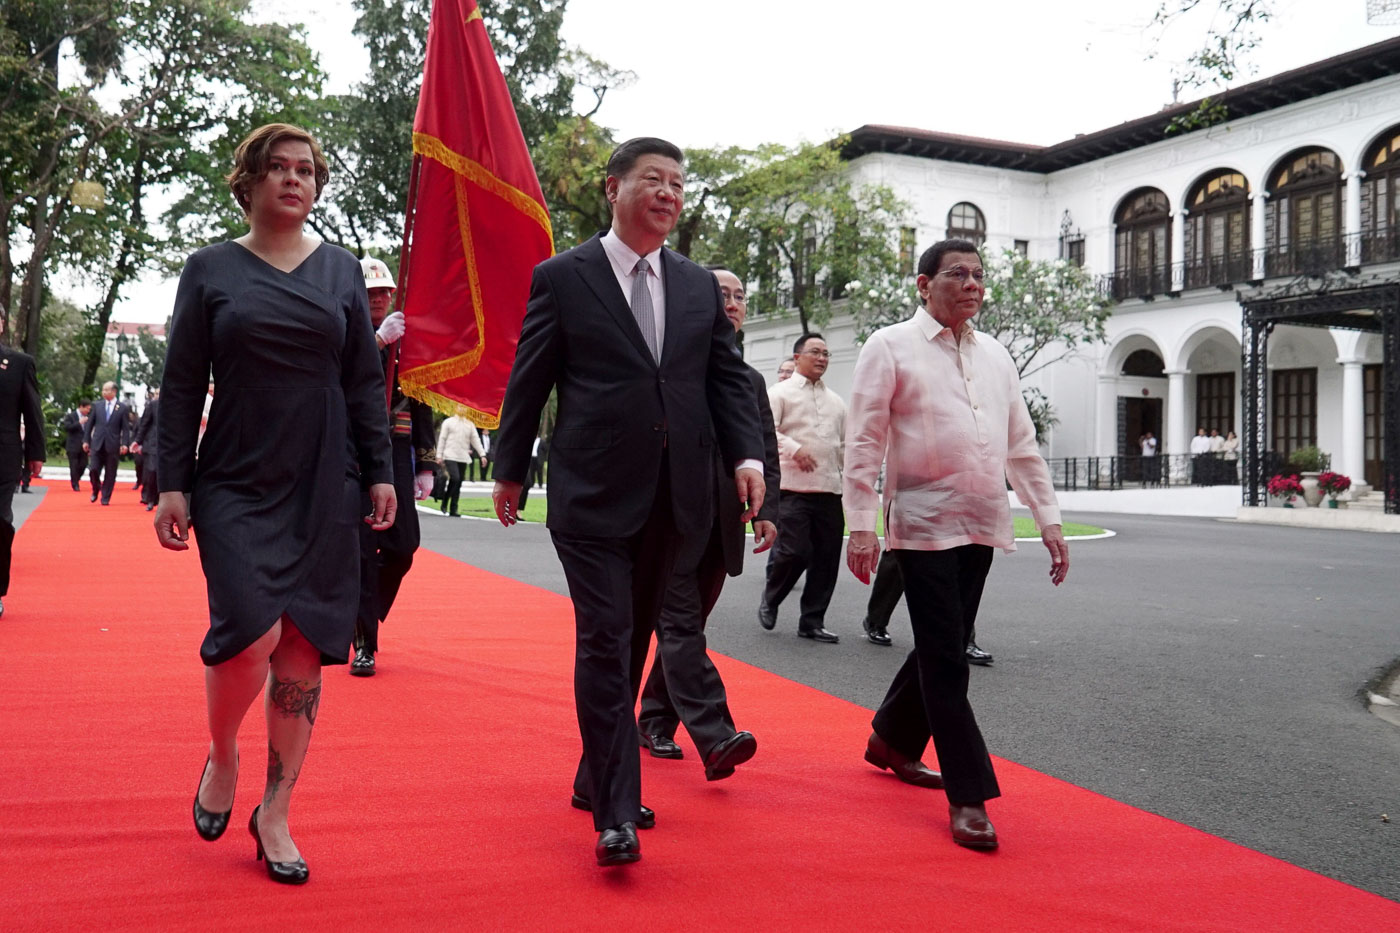 ADJUSTMENT. The Chinese flag is used in place of the Philippine presidential flag during the welcome ceremony. Malacau00f1ang Photo